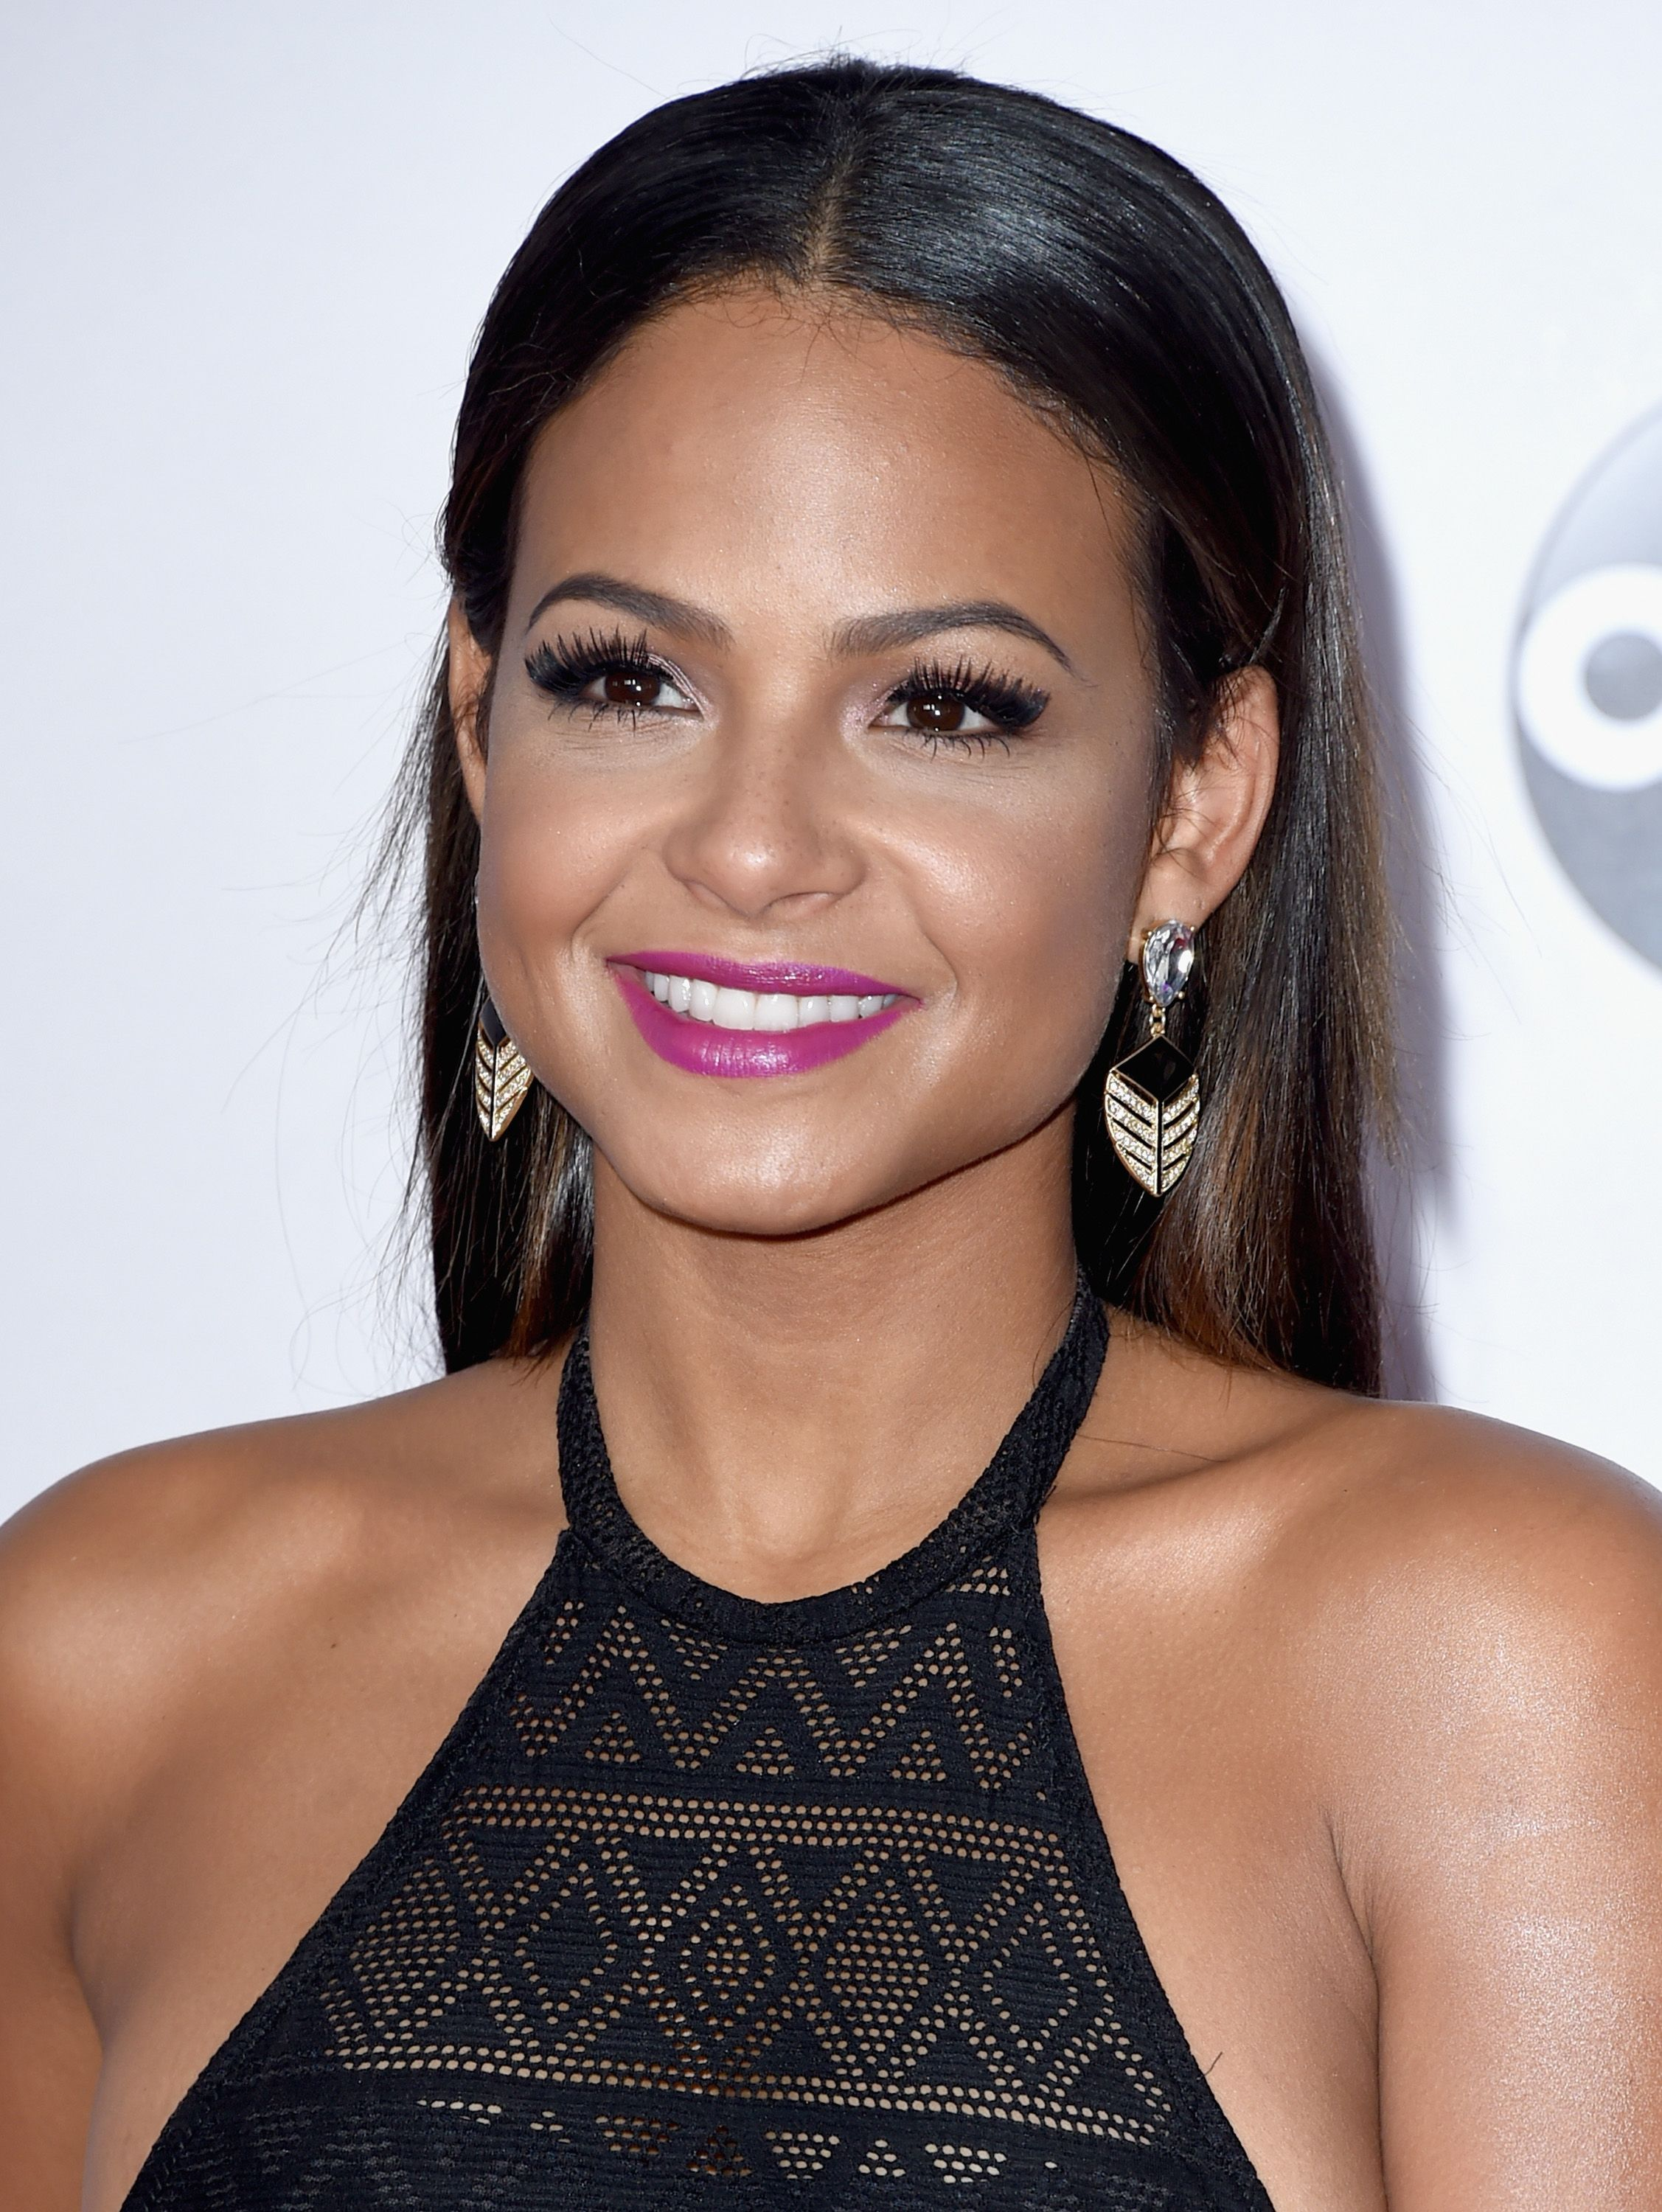 Christina Milian Photo 1609 Of 3147 Pics Wallpaper